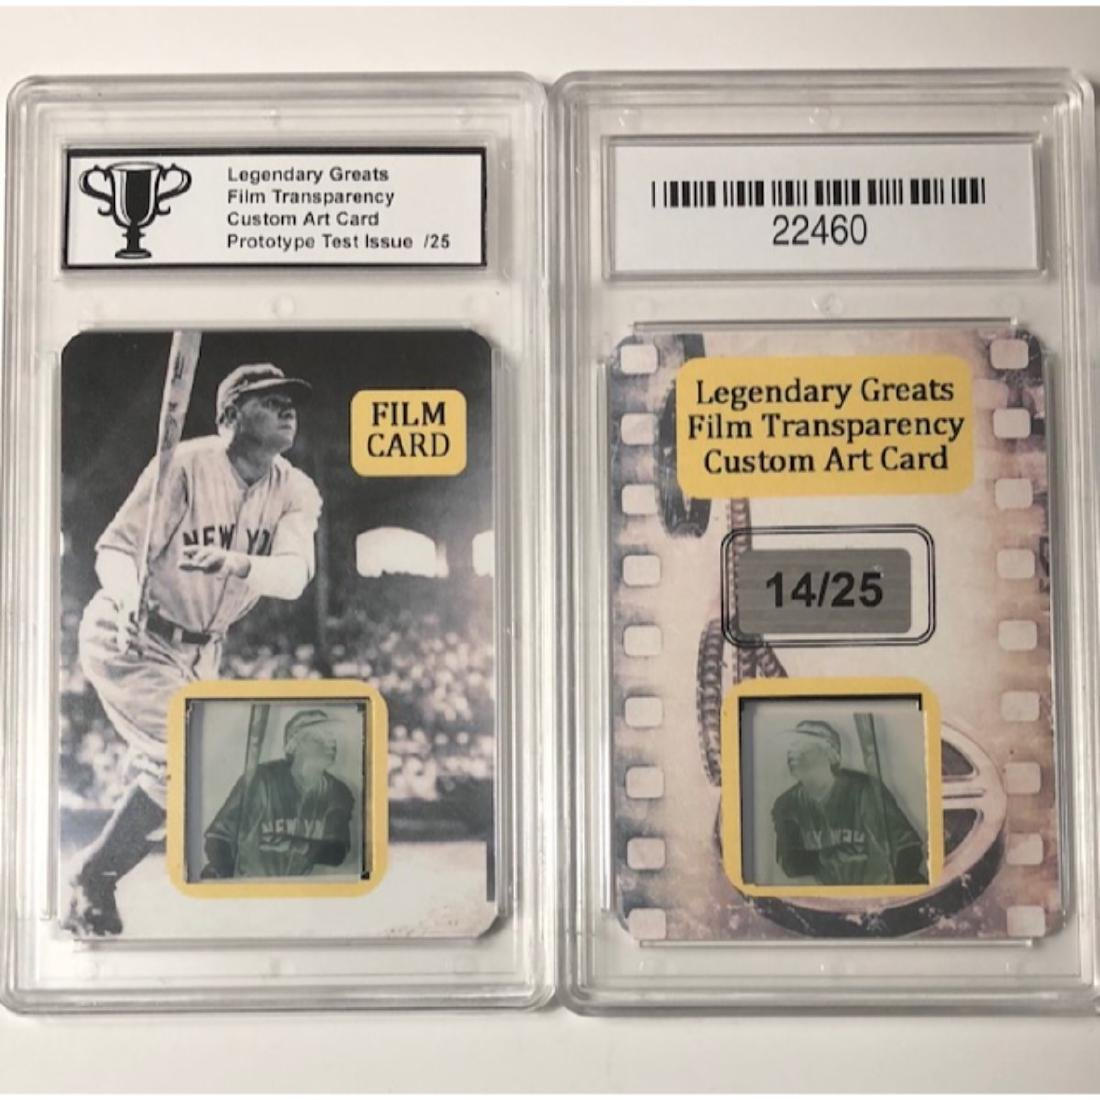 Scarce BABE RUTH Prototype Test Film Transparency